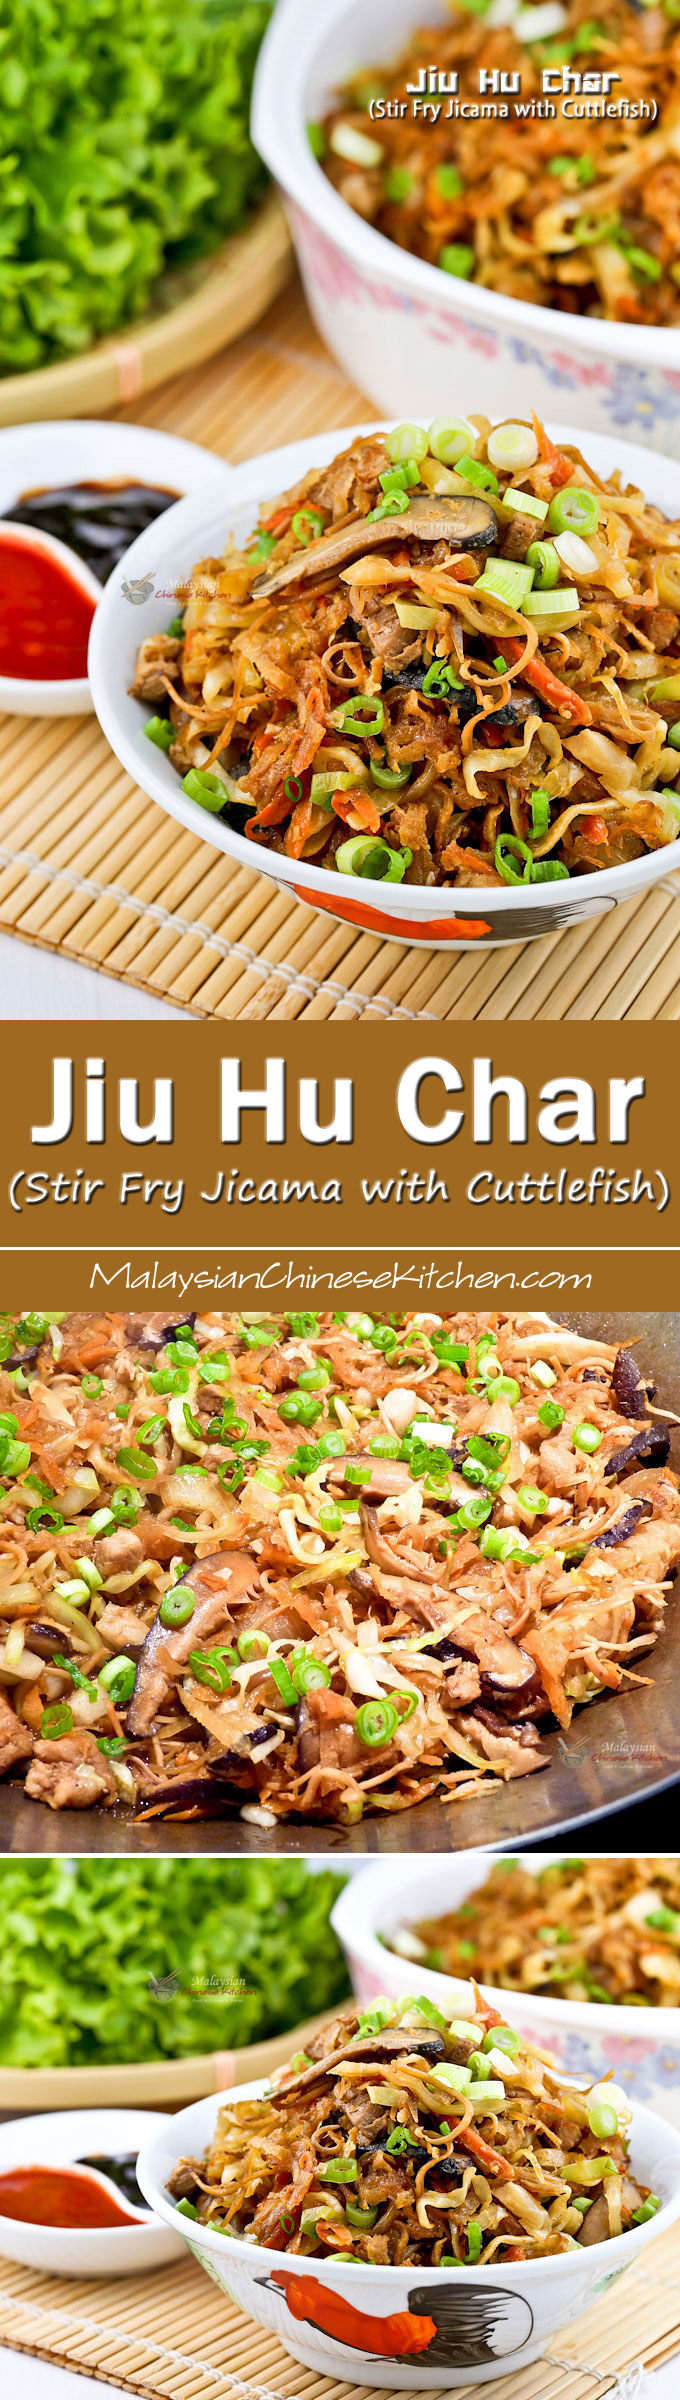 Jiu Hu Char (Stir Fry Jicama with Cuttlefish) is a popular Hokkien (Fujianese) lettuce wrap filling prepared for all major festivals. | MalaysianChineseKitchen.com